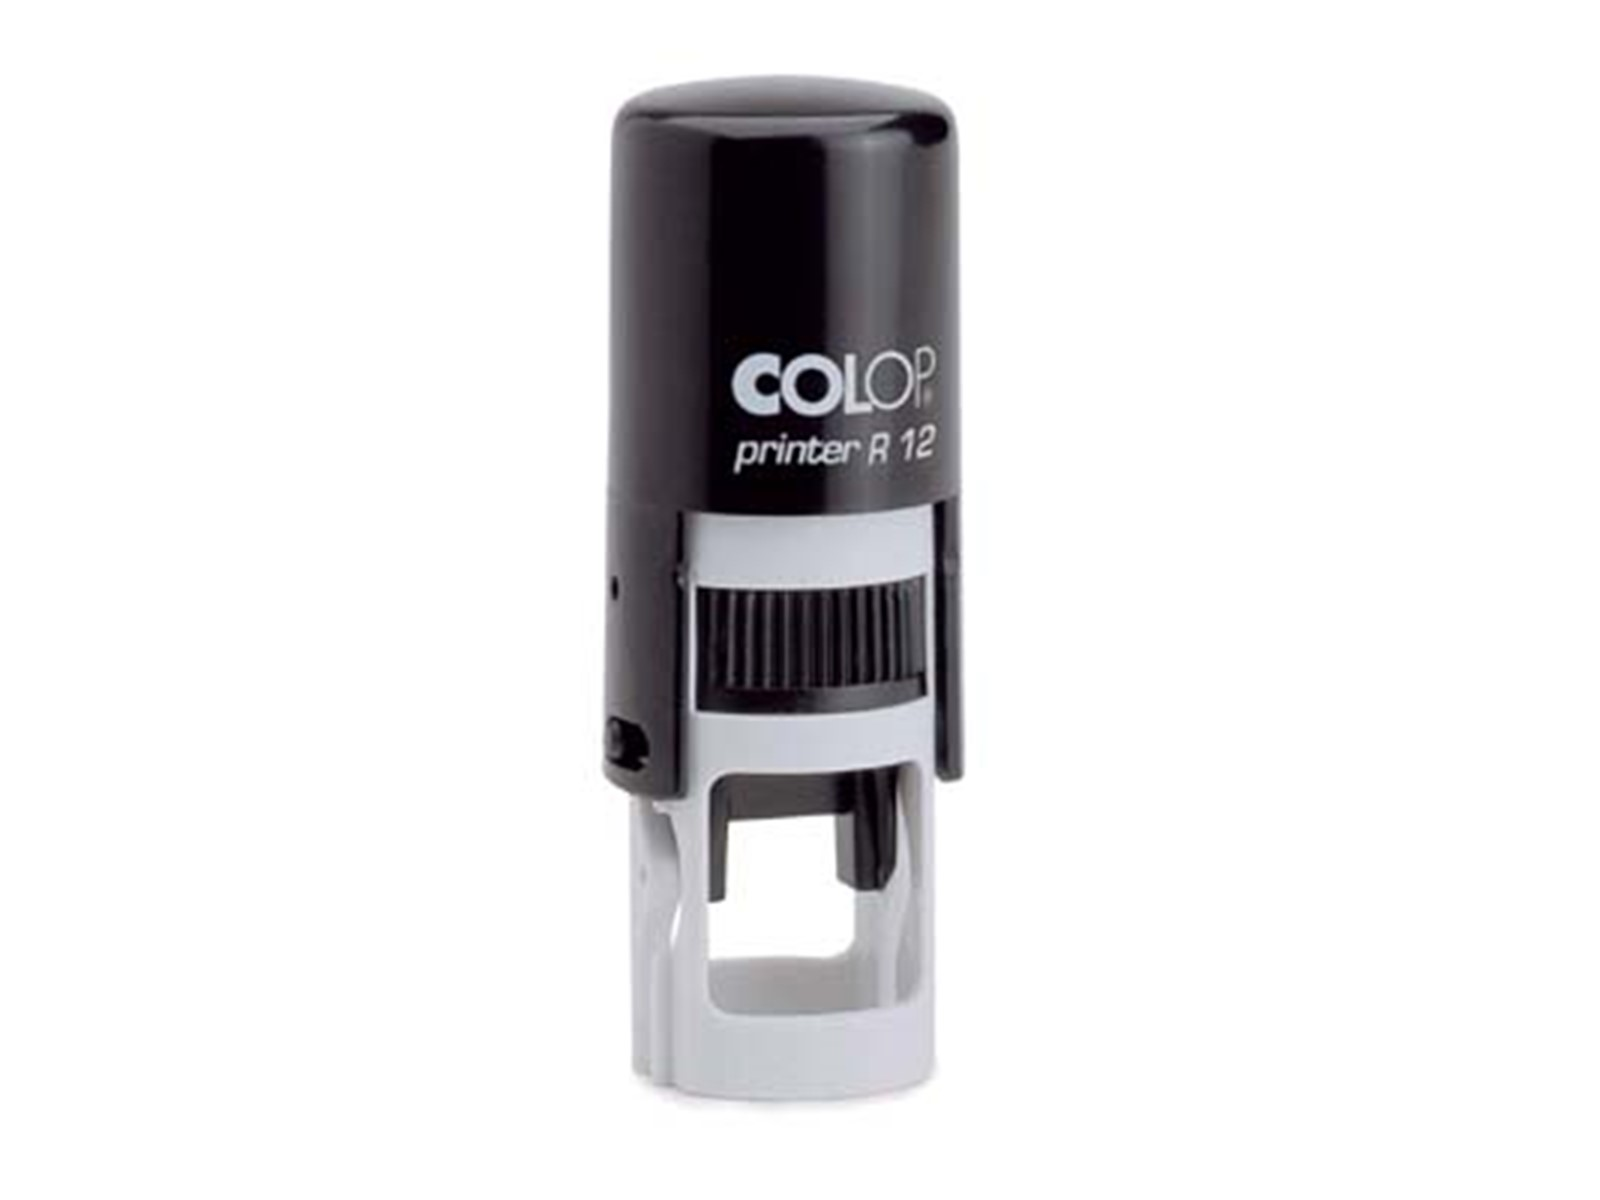 Colop Printer R12 UV/Indgangs stempel